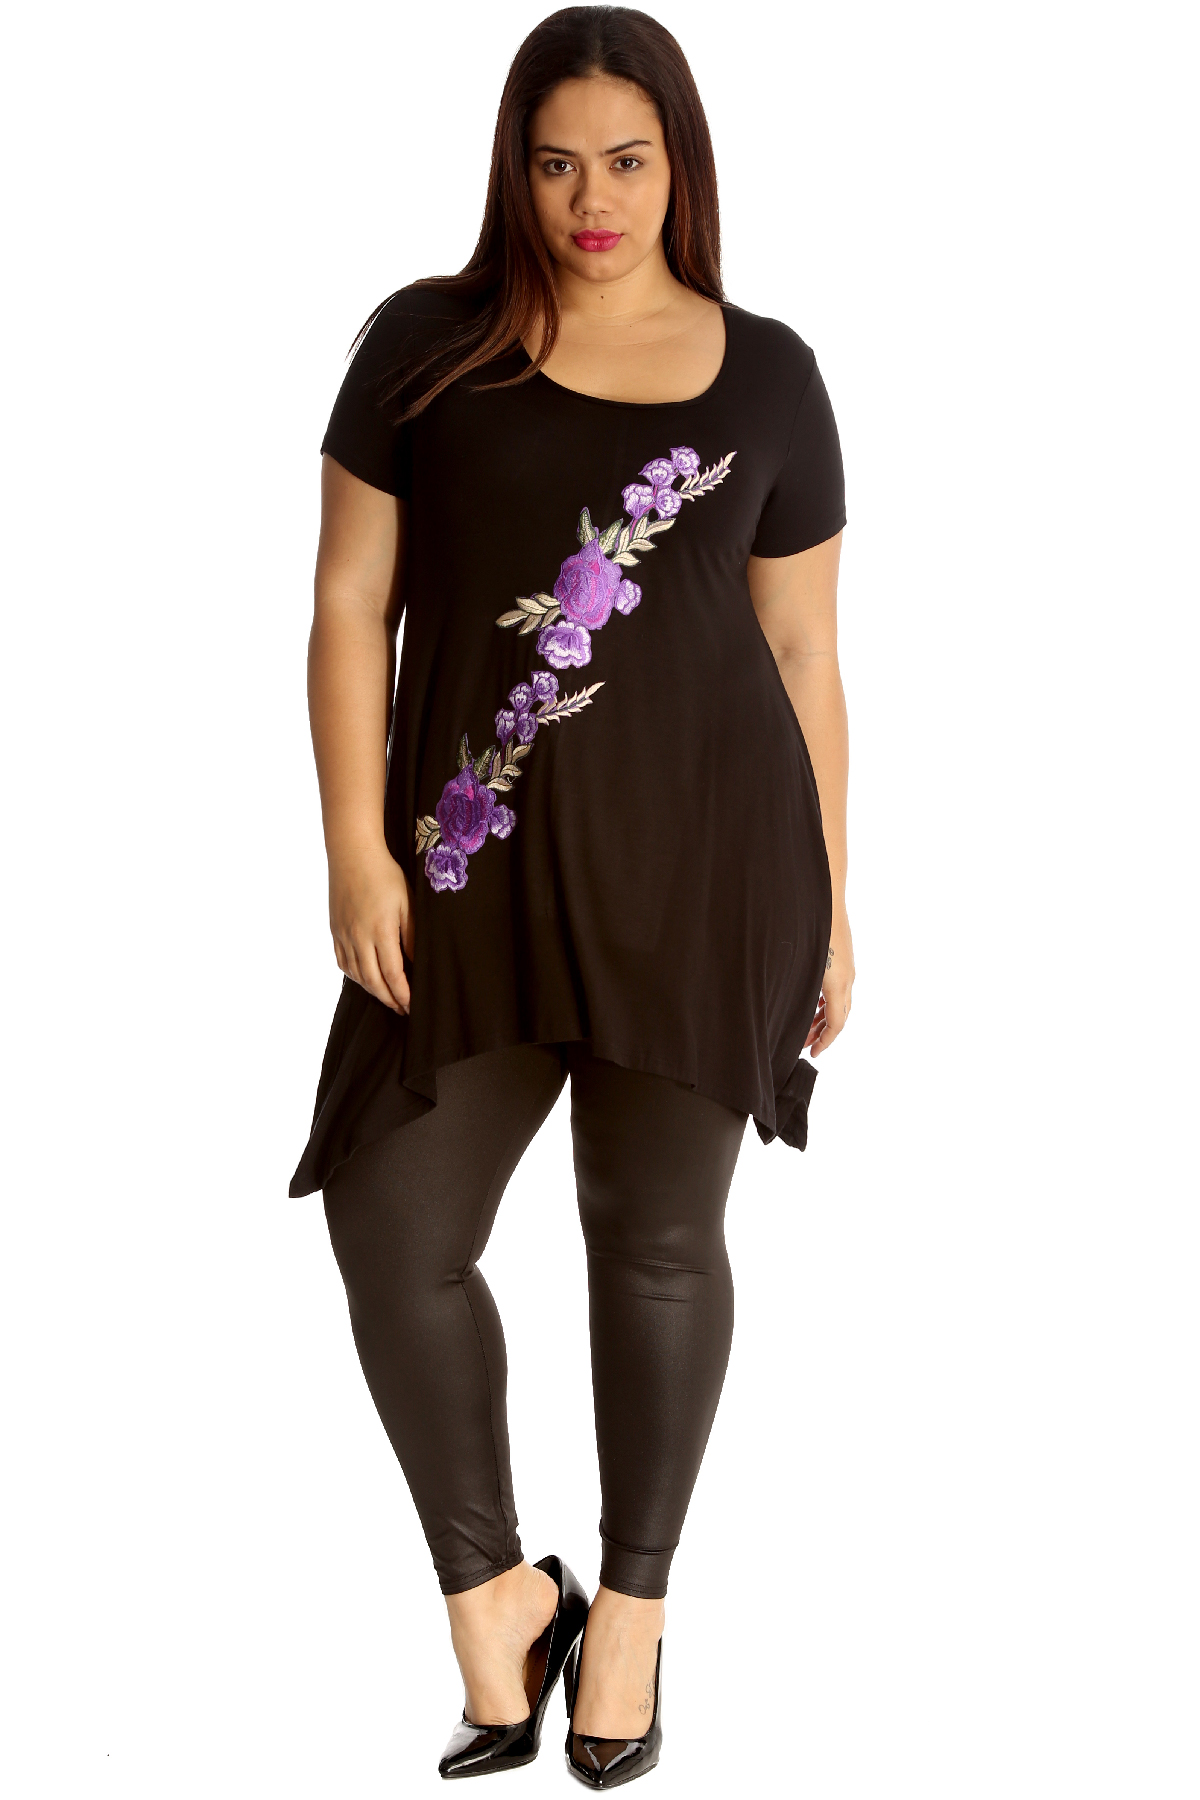 New Womens Plus Size Top Ladies Embroidered Floral Patch A-Line T-Shirt Sale